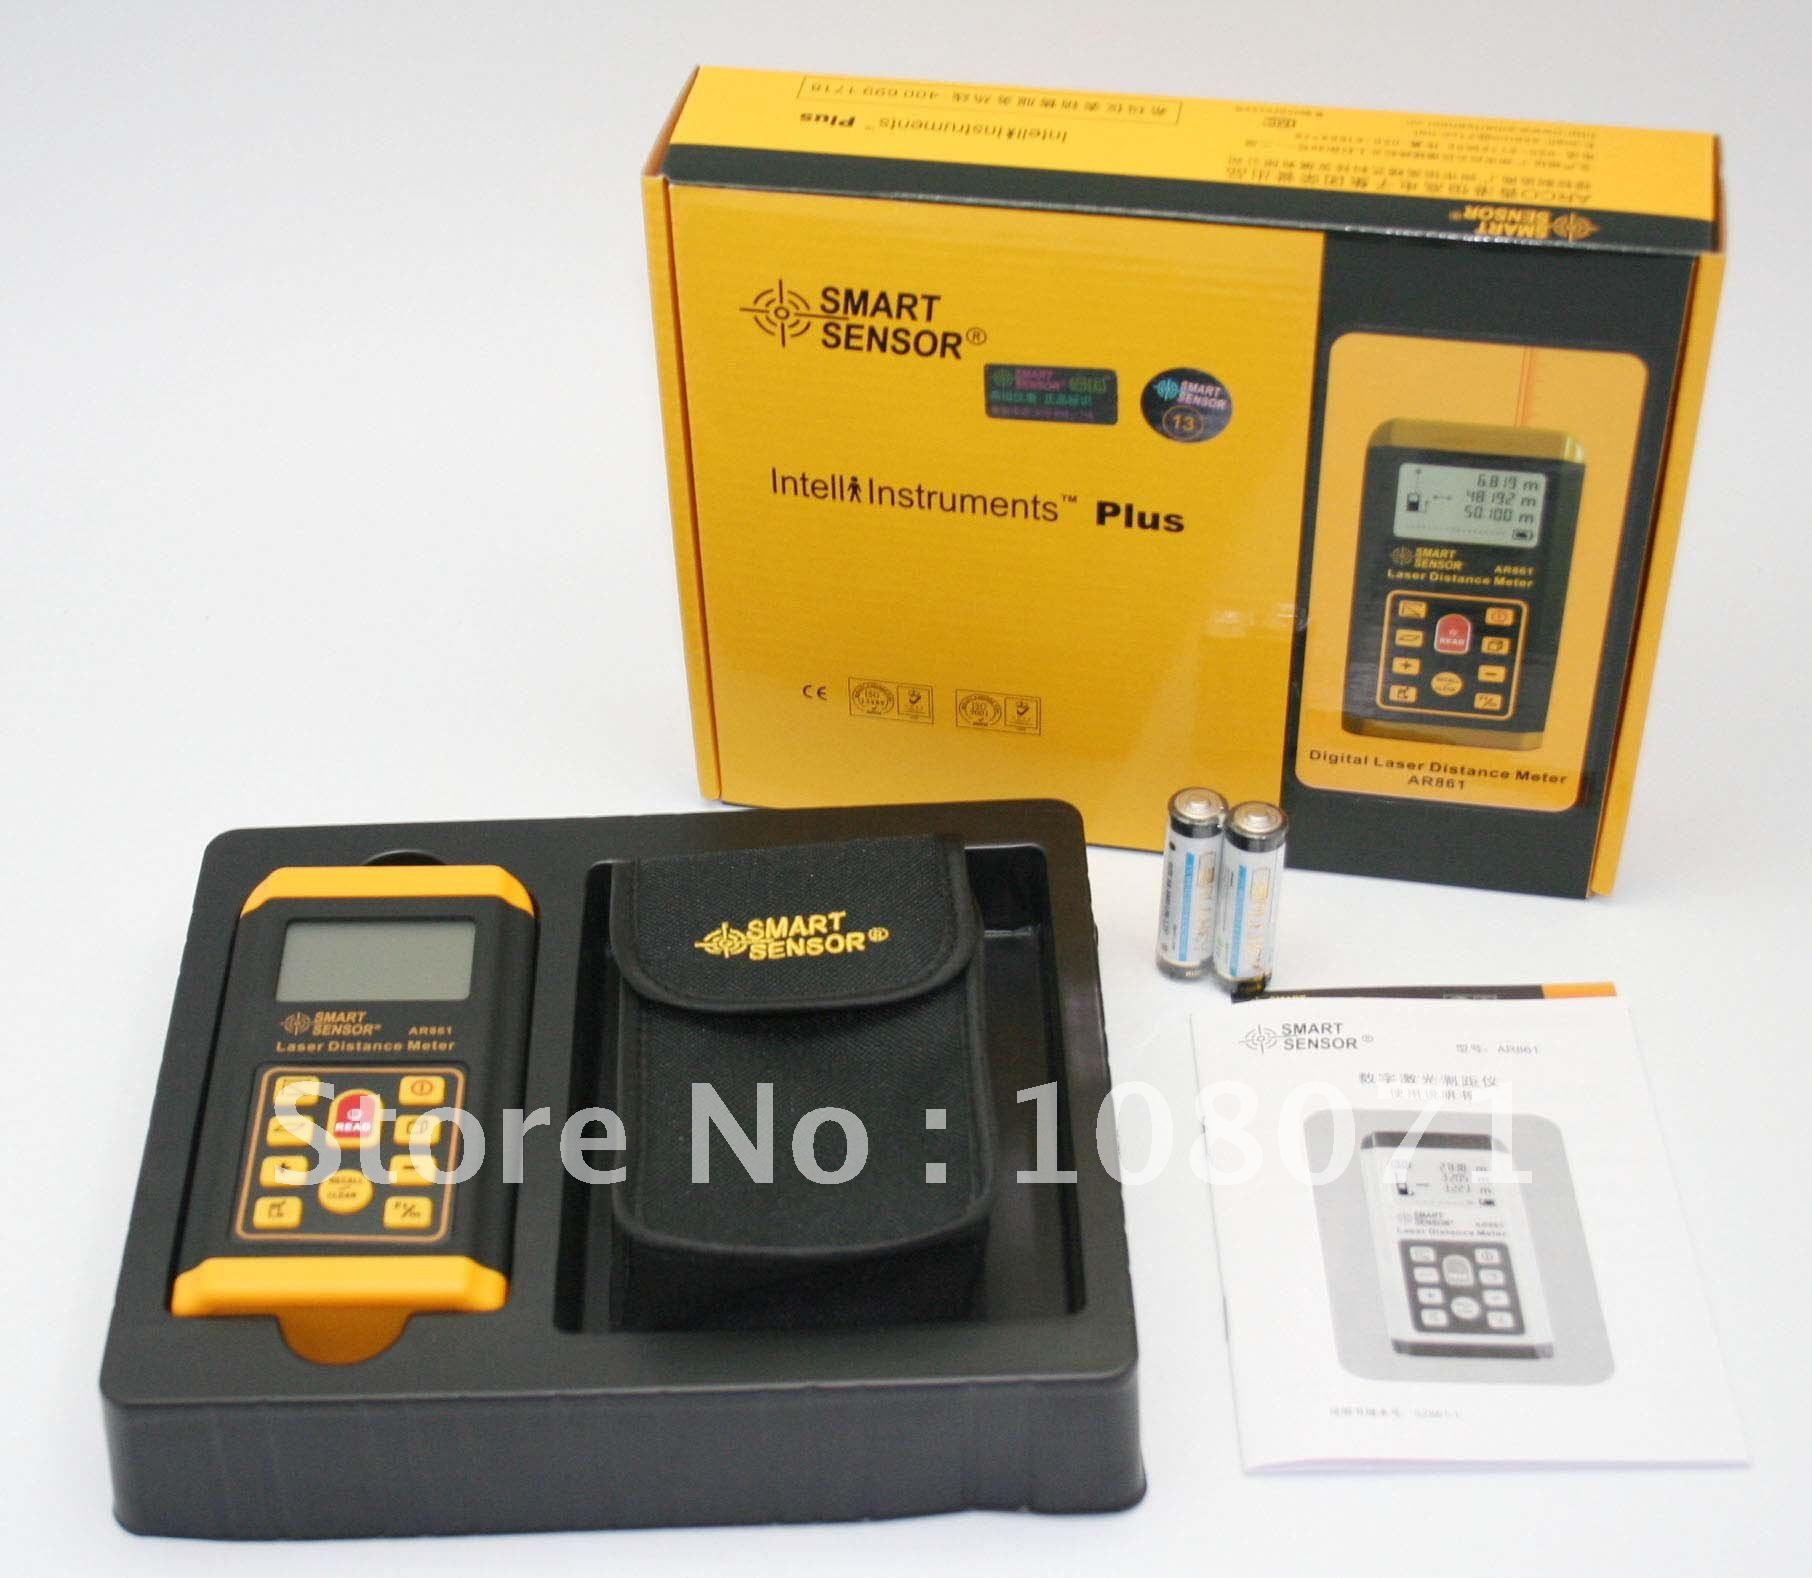 Measuring & Gauging Laser Distance Meter Smart Sensor AR861 Tester,Free shipping!!!(China (Mainland))